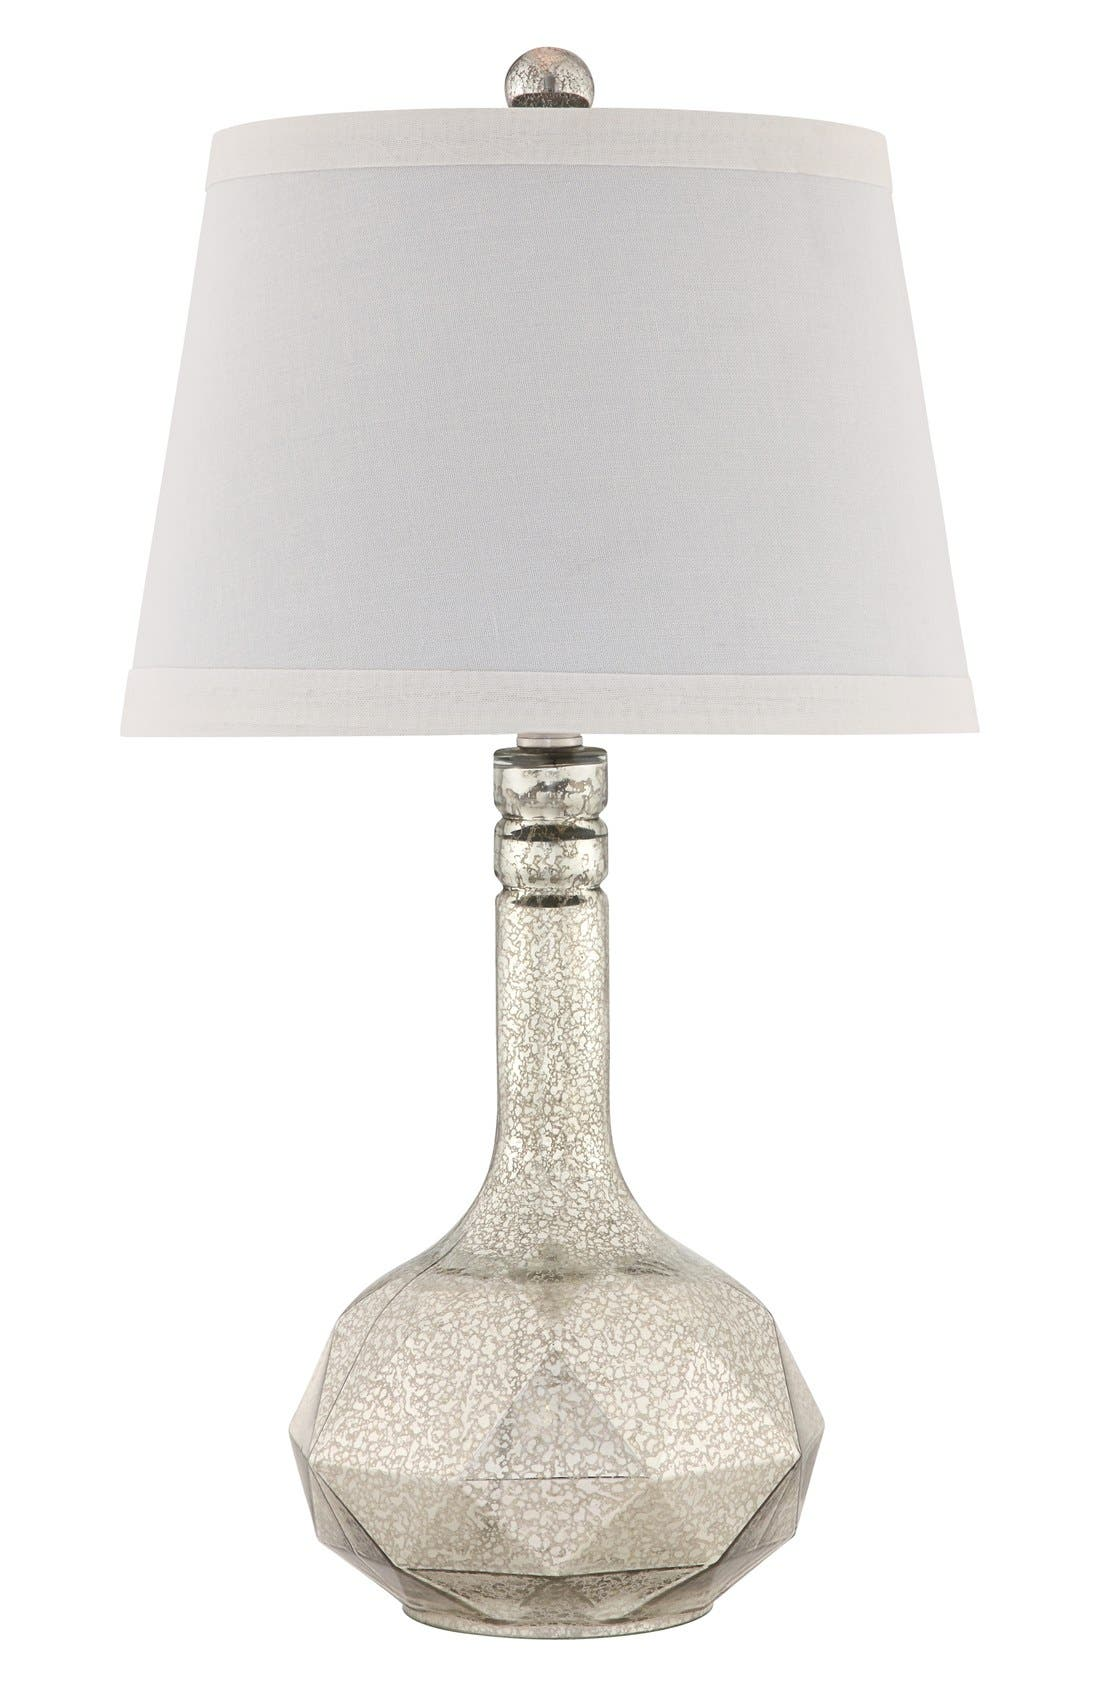 Mercury Glass Table Lamp,                             Main thumbnail 1, color,                             Silver/ Brushed Nickel